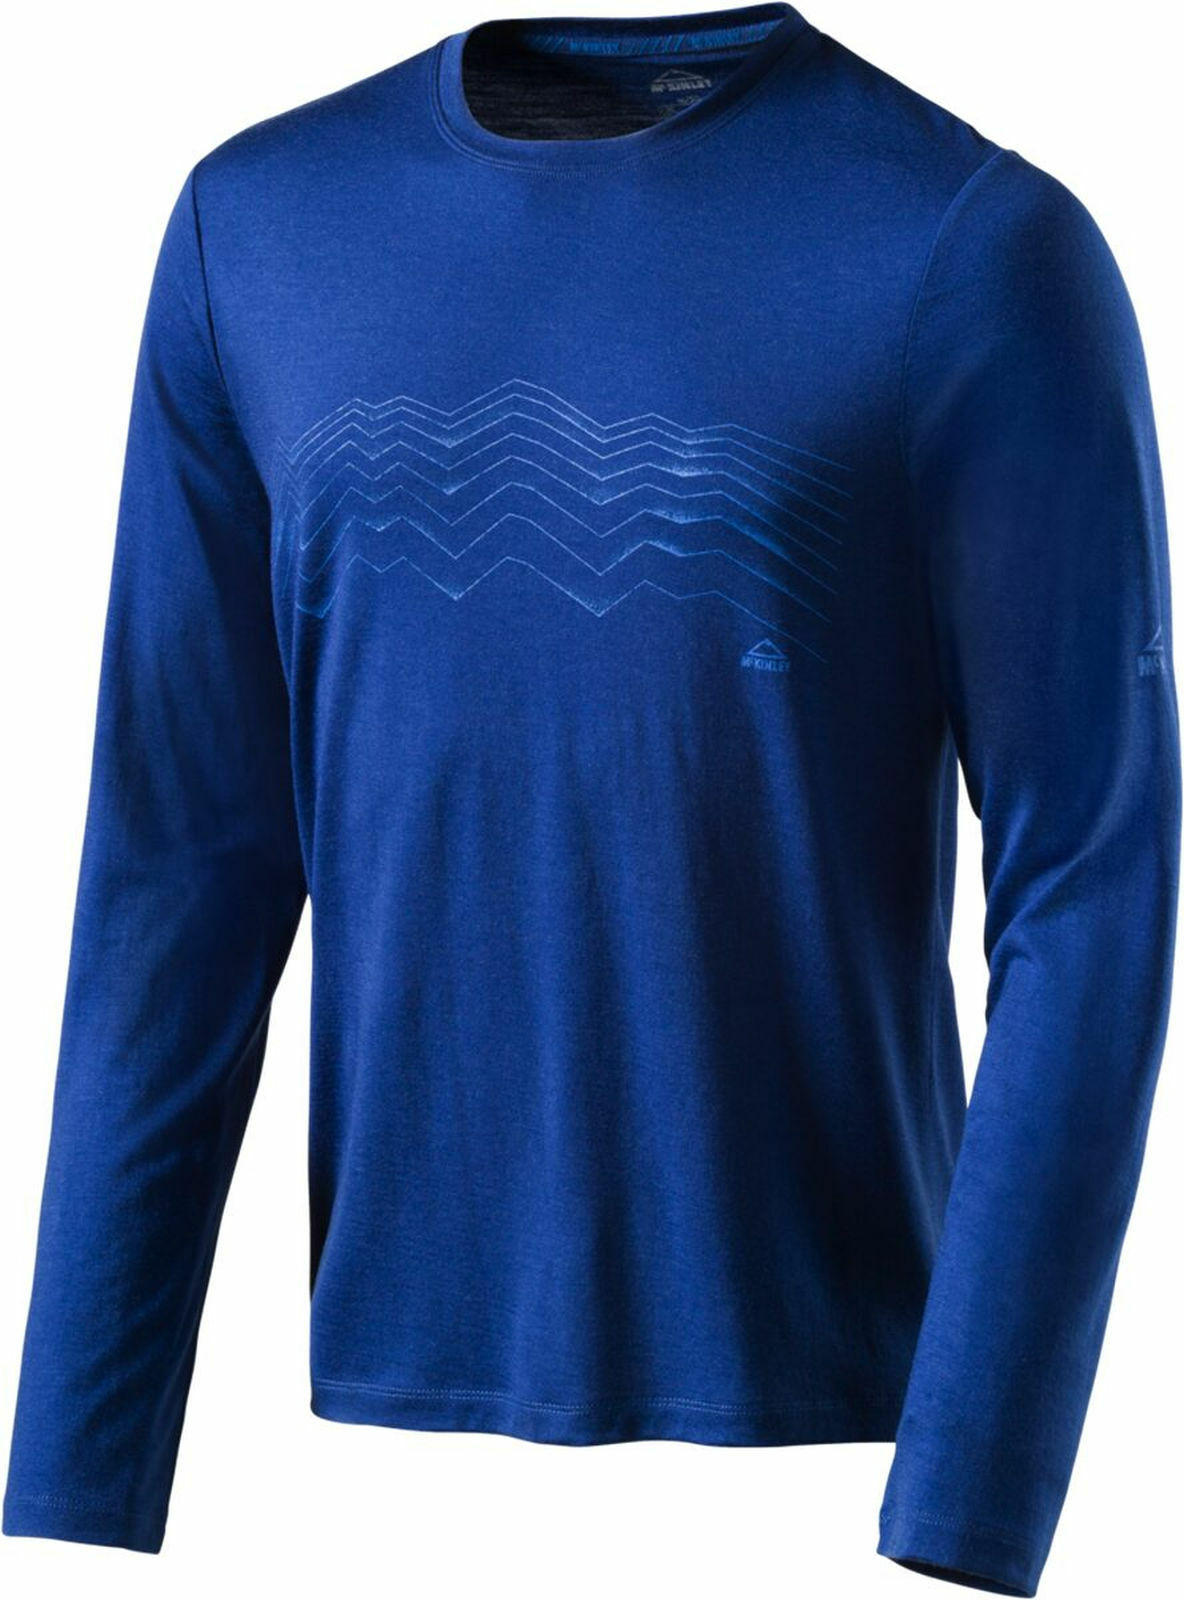 McKinley Men's Leisure Outdoor Hiking Long Sleeve  Shirt Kara from Wool bluee  large selection